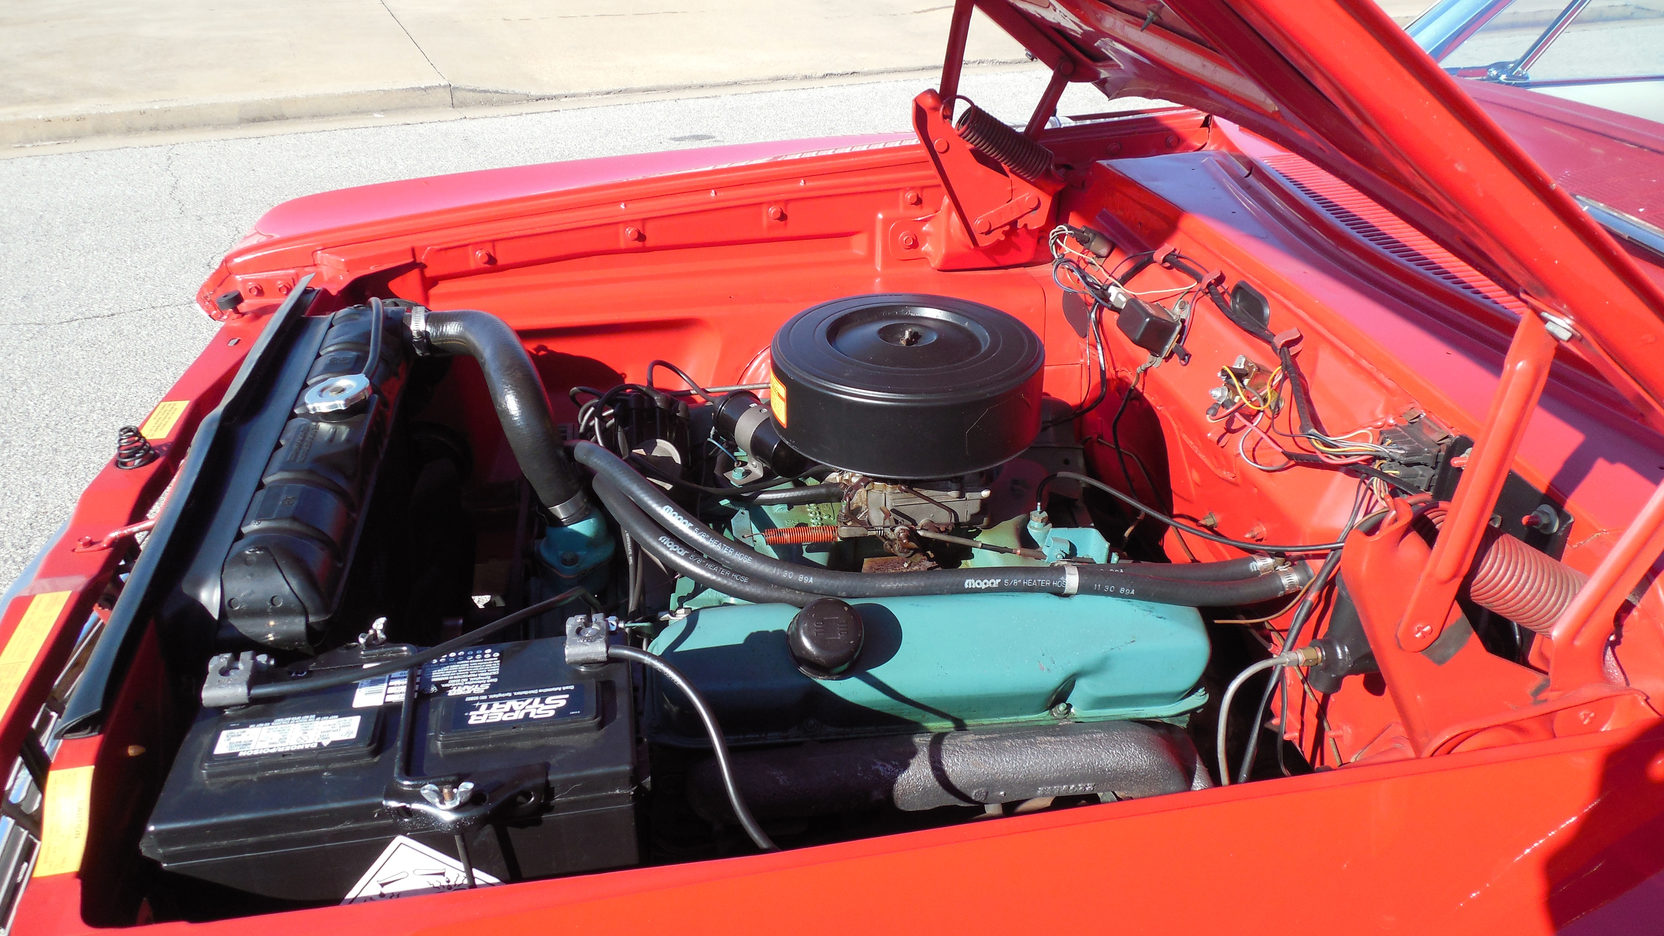 4 speed manual transmission for 68 fury for sale